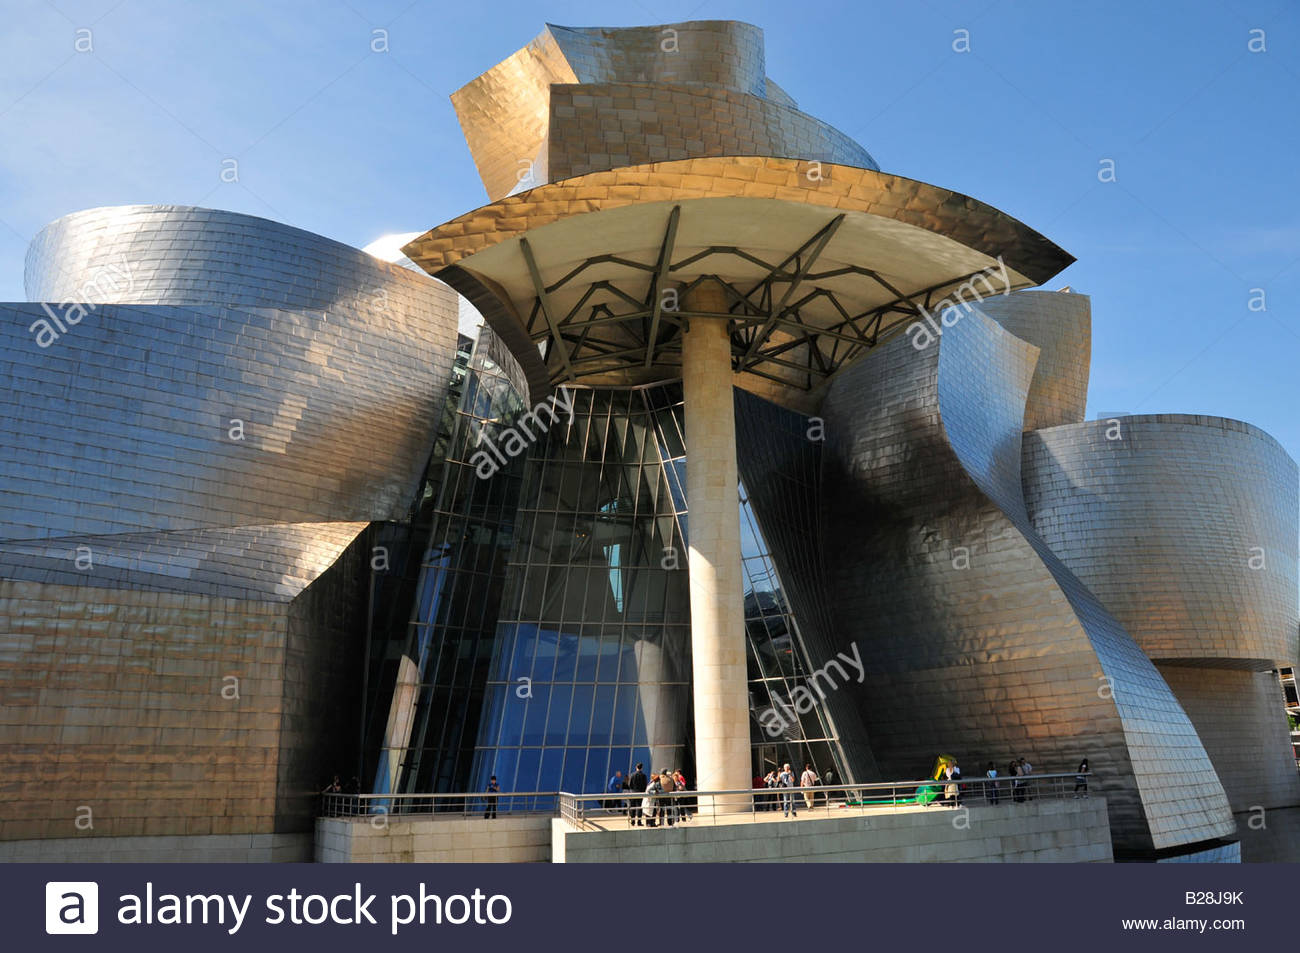 bilbao spain the guggenheim museum of modern the stock photo royalty free image